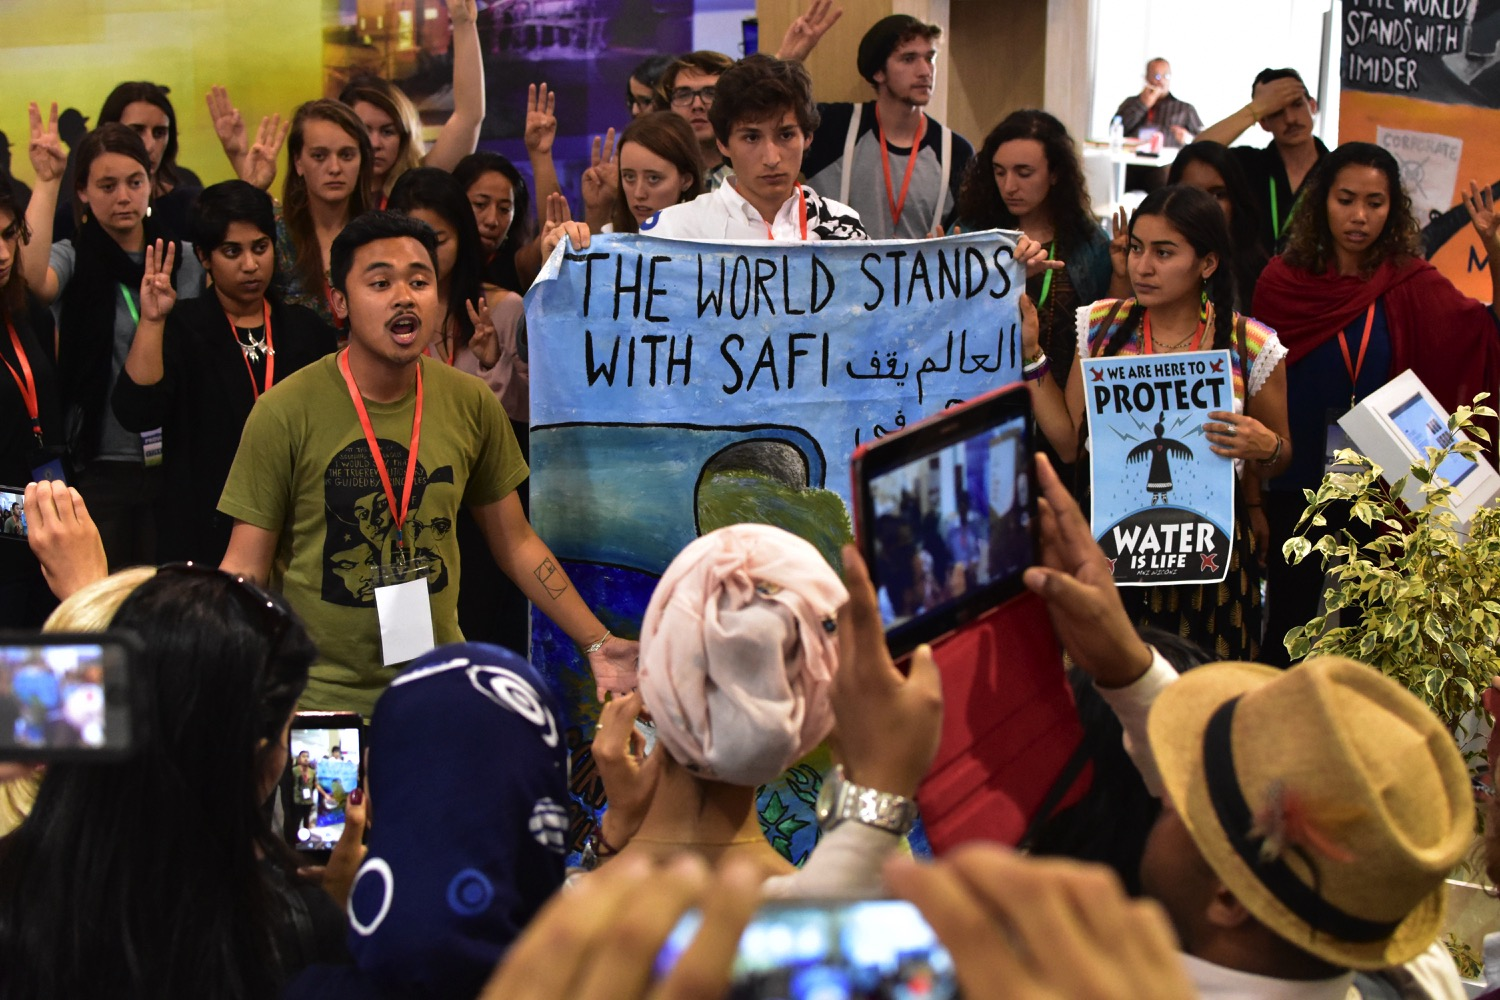 SustainUS delegates at COP22 in an action protesting a Moroccan phosphate company that has polluted the coastal region of Safi while sponsoring the conference.